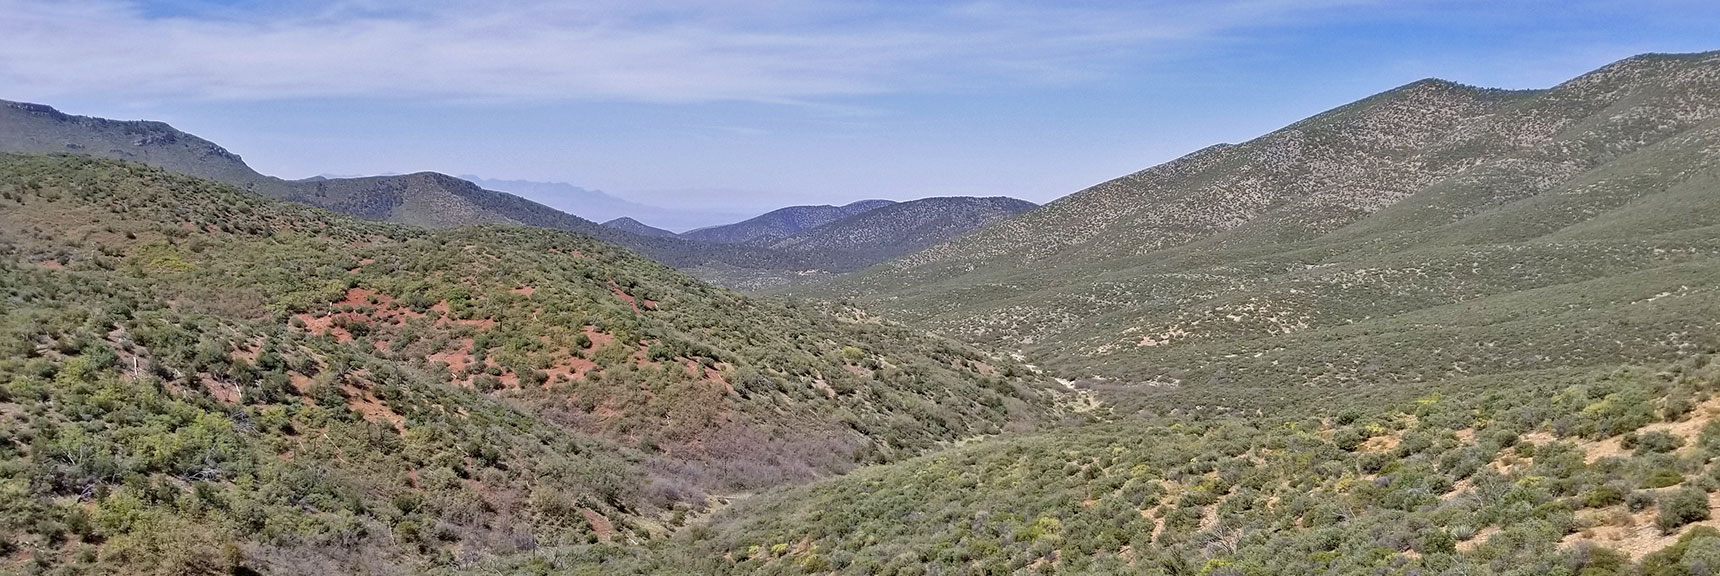 View Toward Pahrump (Down Trout Canyon?) from Griffith Shadow Trail, La Madre Mountains Wilderness, Nevada